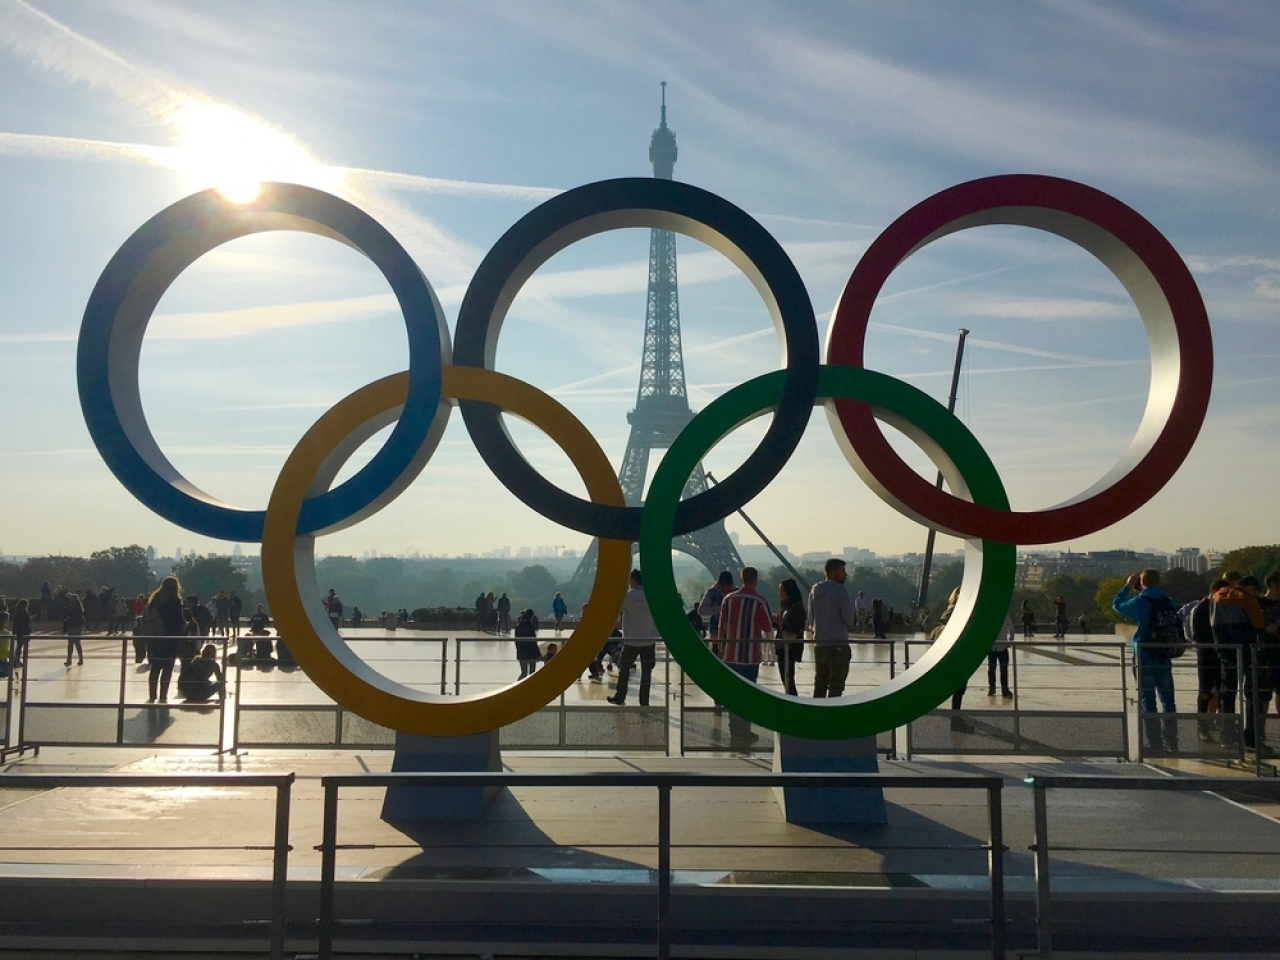 After the extraordinary Summer Games in Tokyo all eyes will now turn to Paris in 2024. Photo: Shutterstock